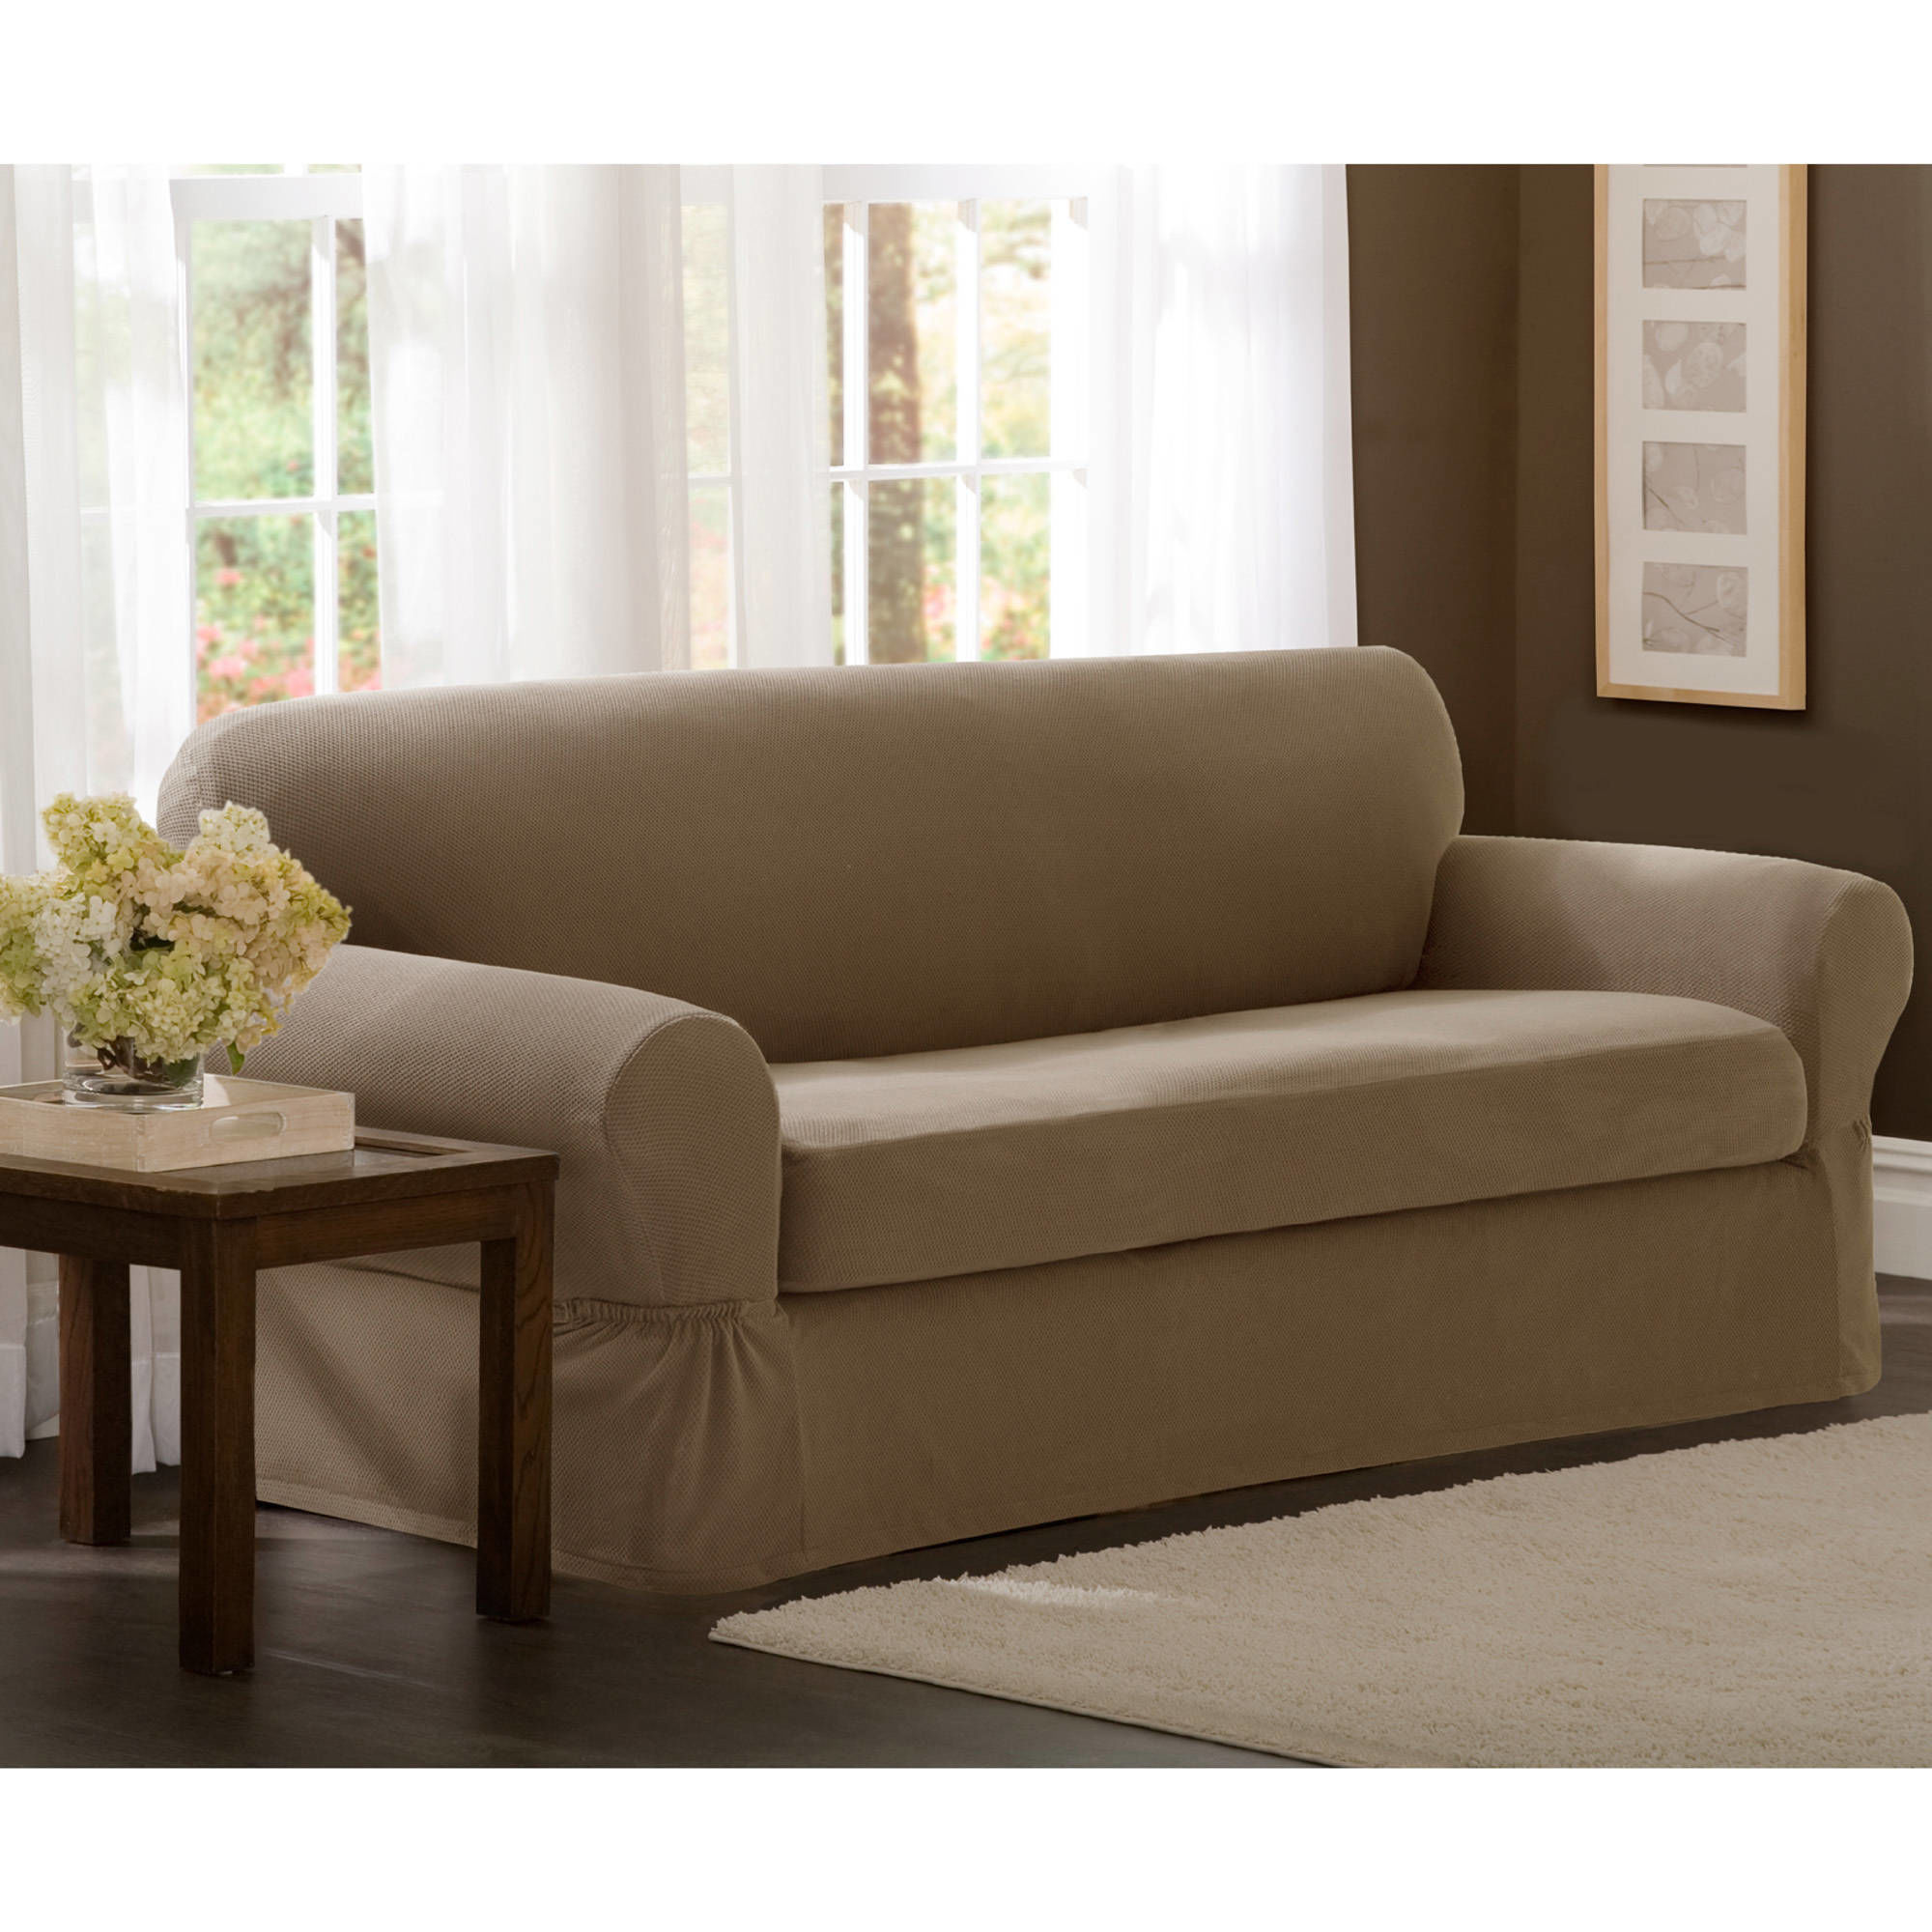 excellent sofa slipcovers walmart portrait-Top sofa Slipcovers Walmart Wallpaper